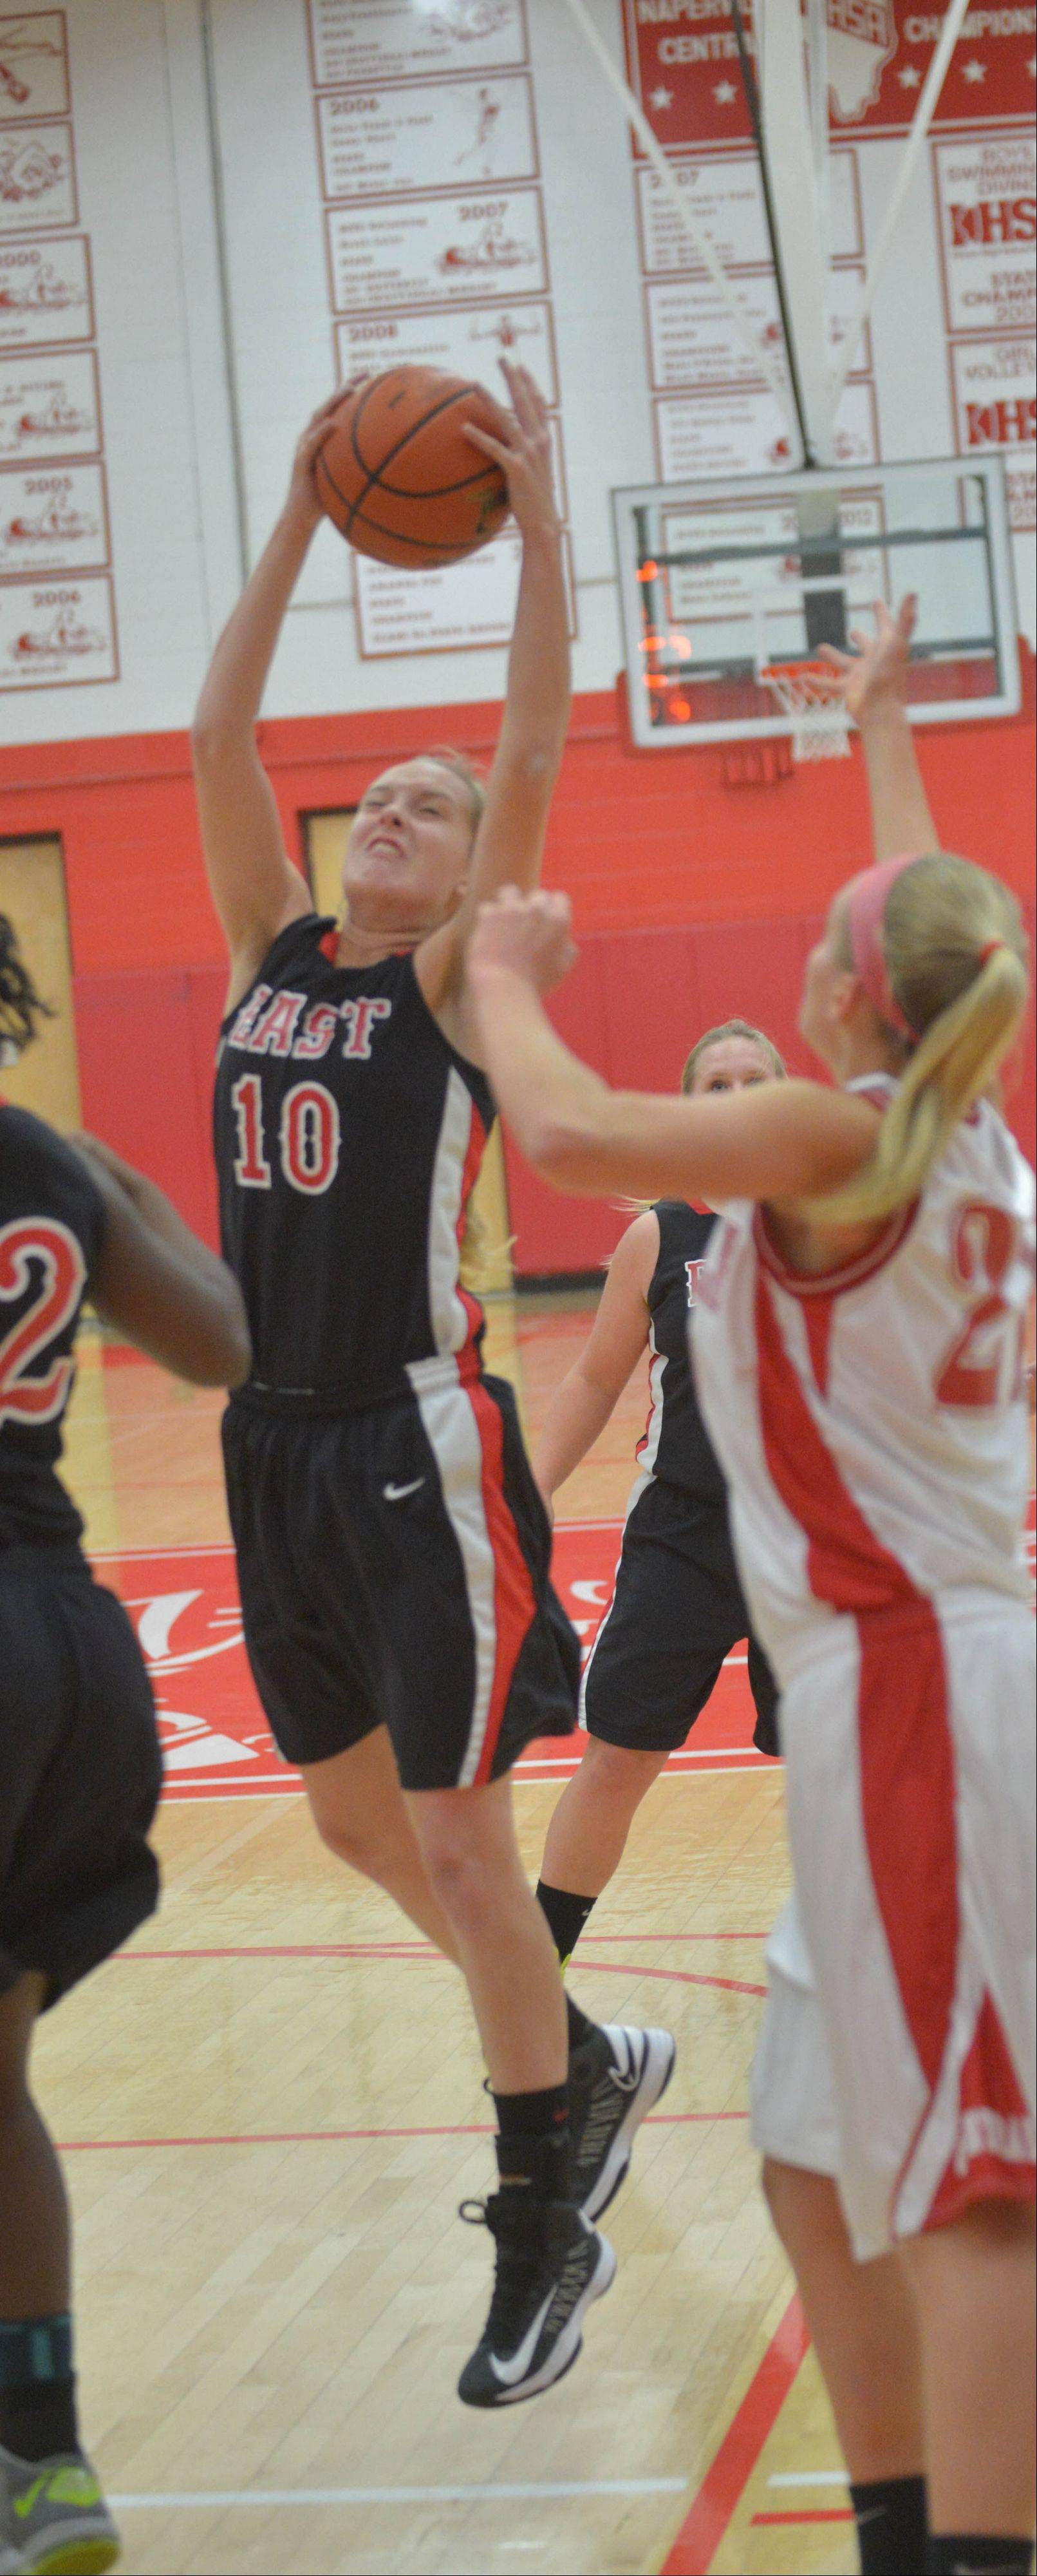 Allison Hansen of Glrenbard East goes up for a rebound during the Glenbard East at Naperville Central girls basketball game Thursday.